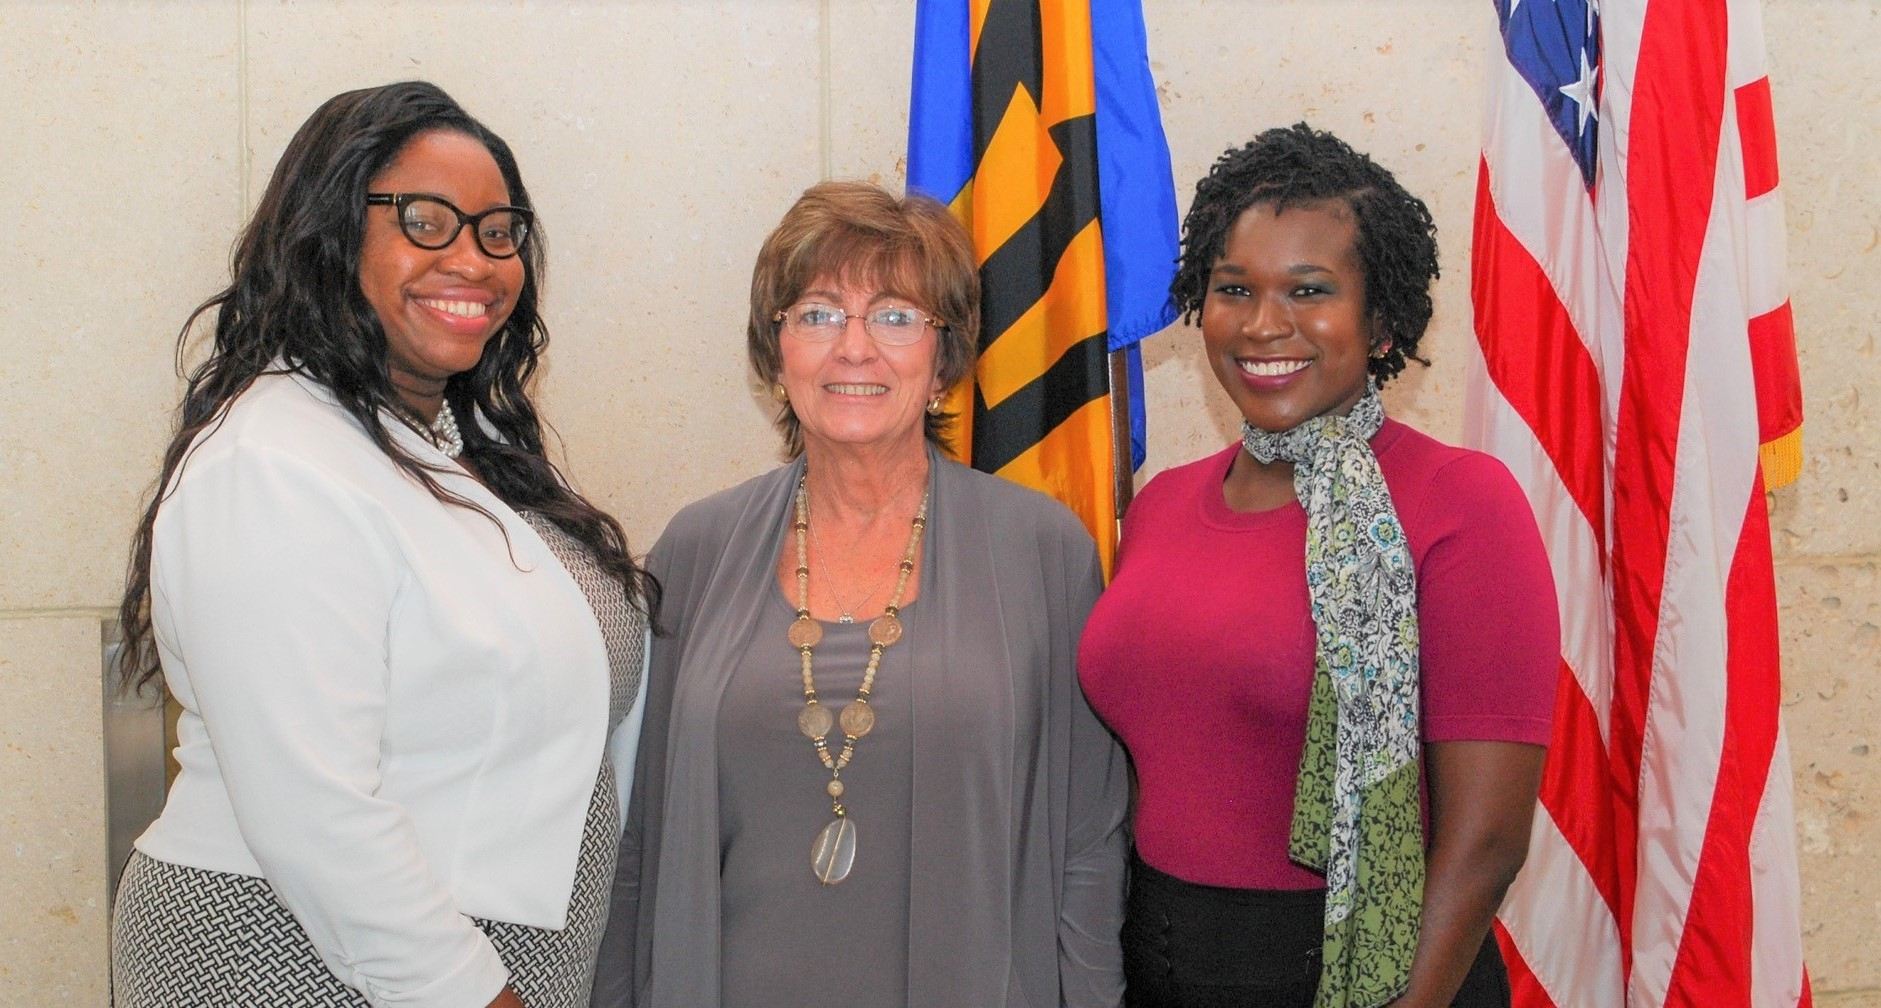 Fulbright Foreign Student scholar, Tamesha Duesbury (left), and Fulbright LASPAU recipient, Versia Harris (right) pose for a photo with U.S. Ambassador Linda Taglialatela at their pre-departure briefing. (PHOTO: US Embassy)